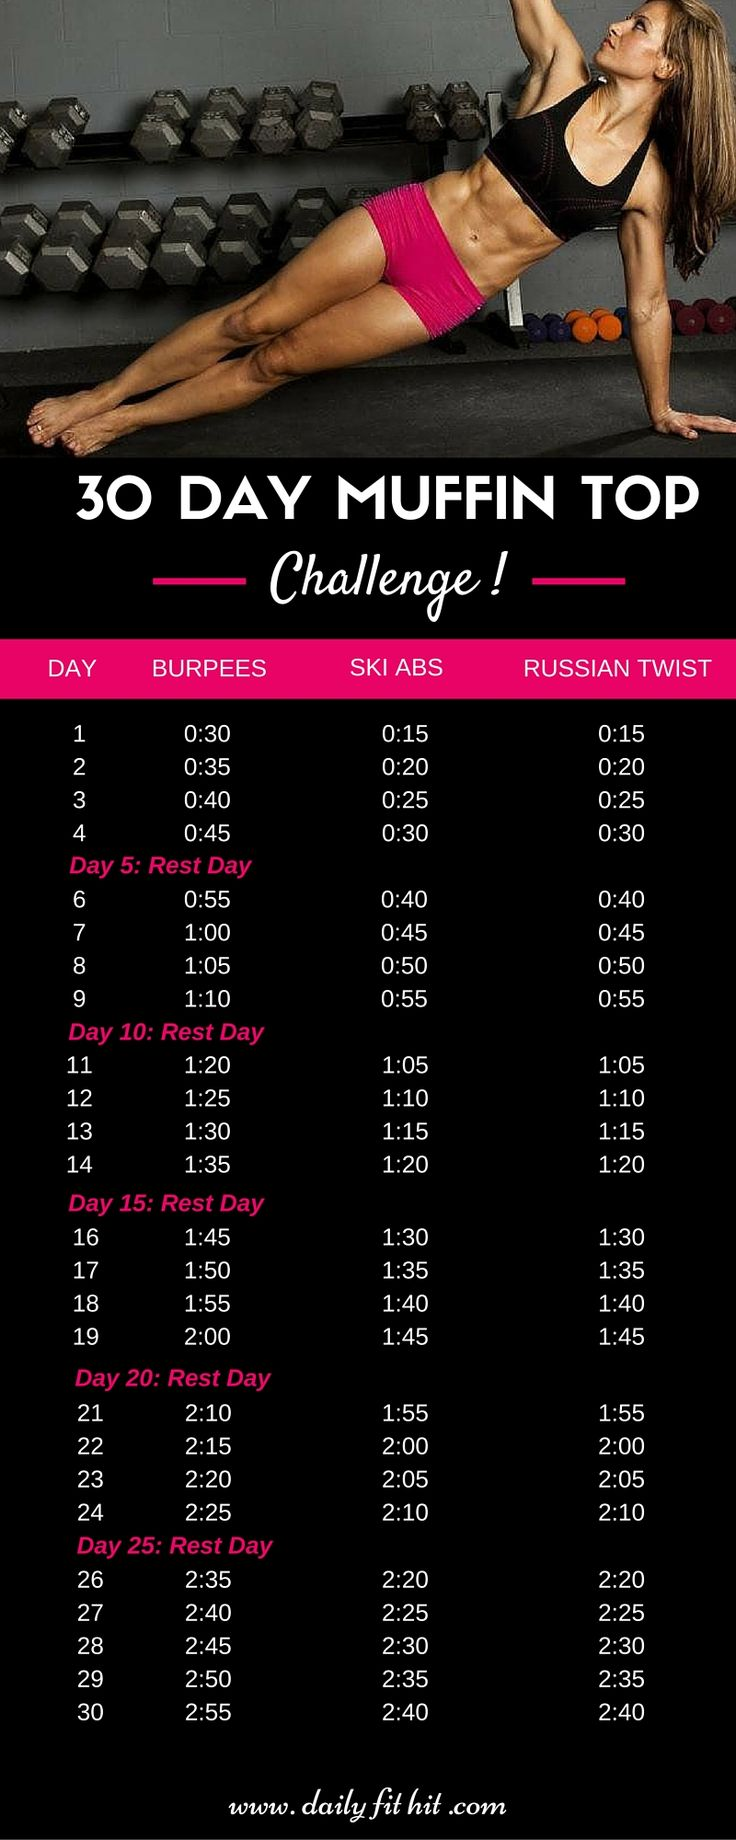 30 Day Muffin Top Challenge. Get flat abs in a month